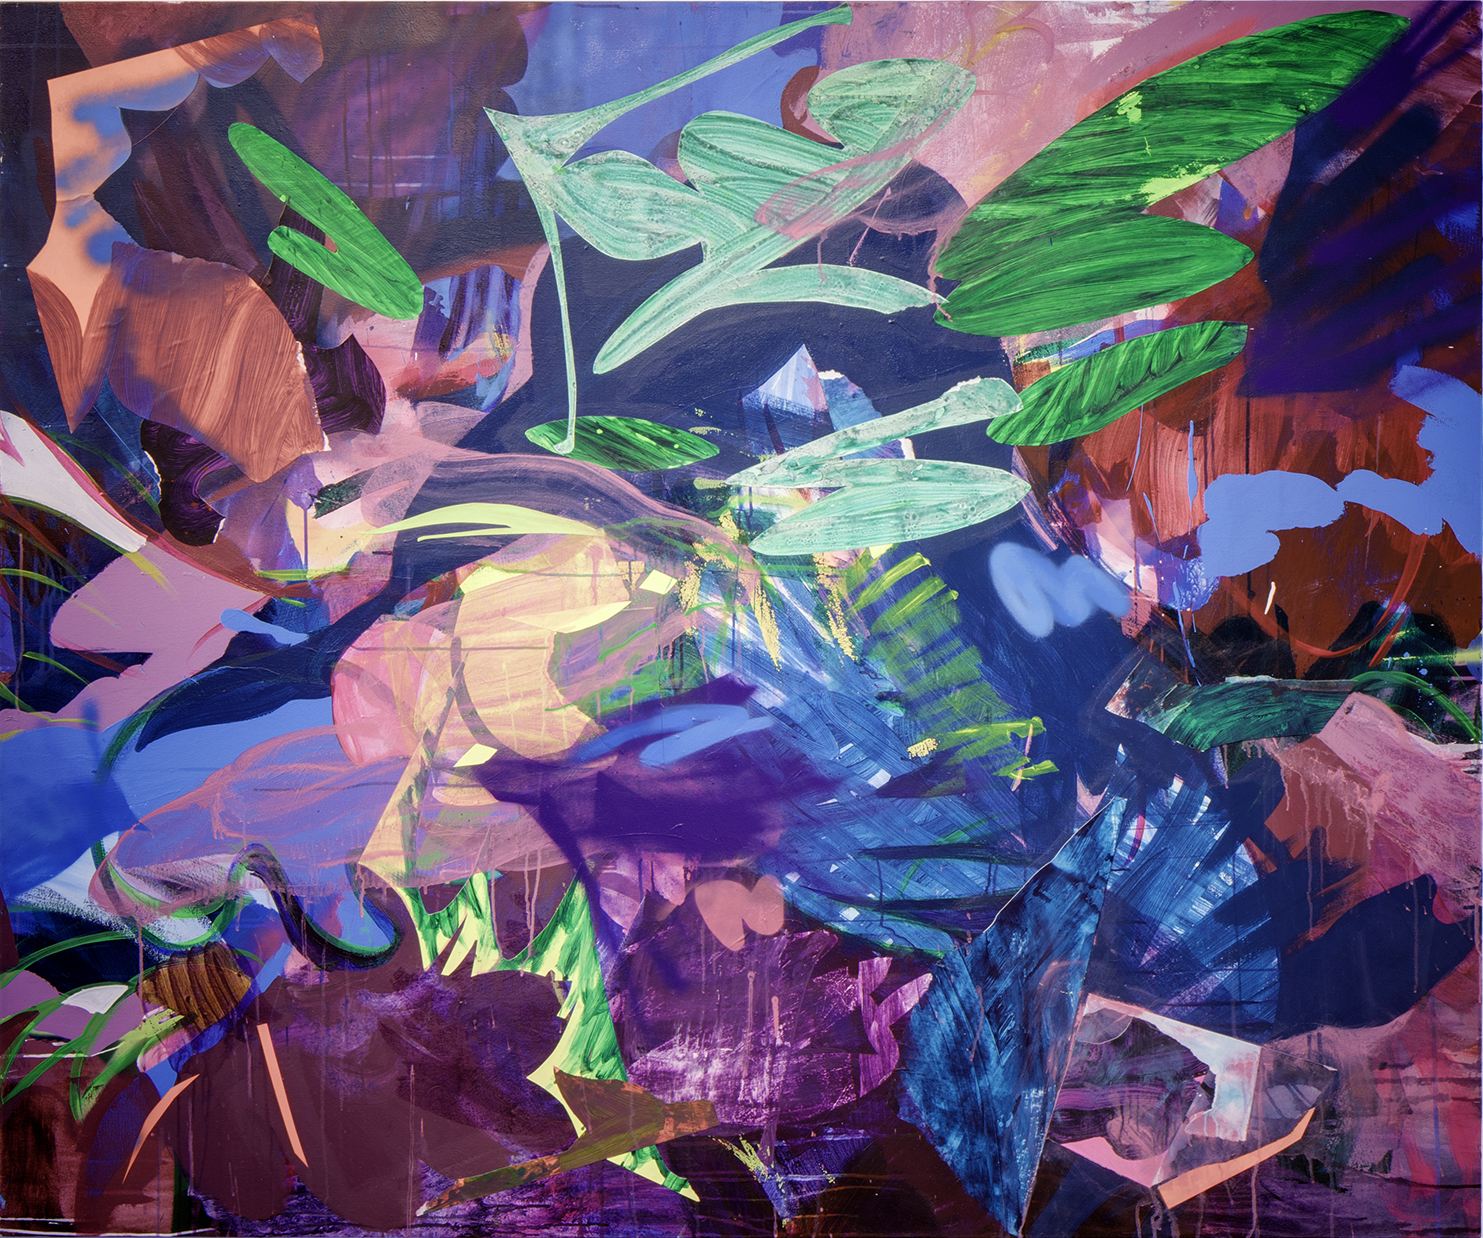 Cacophony , 60 x 72 in., Acrylic, spray paint, collage on canvas, 2016